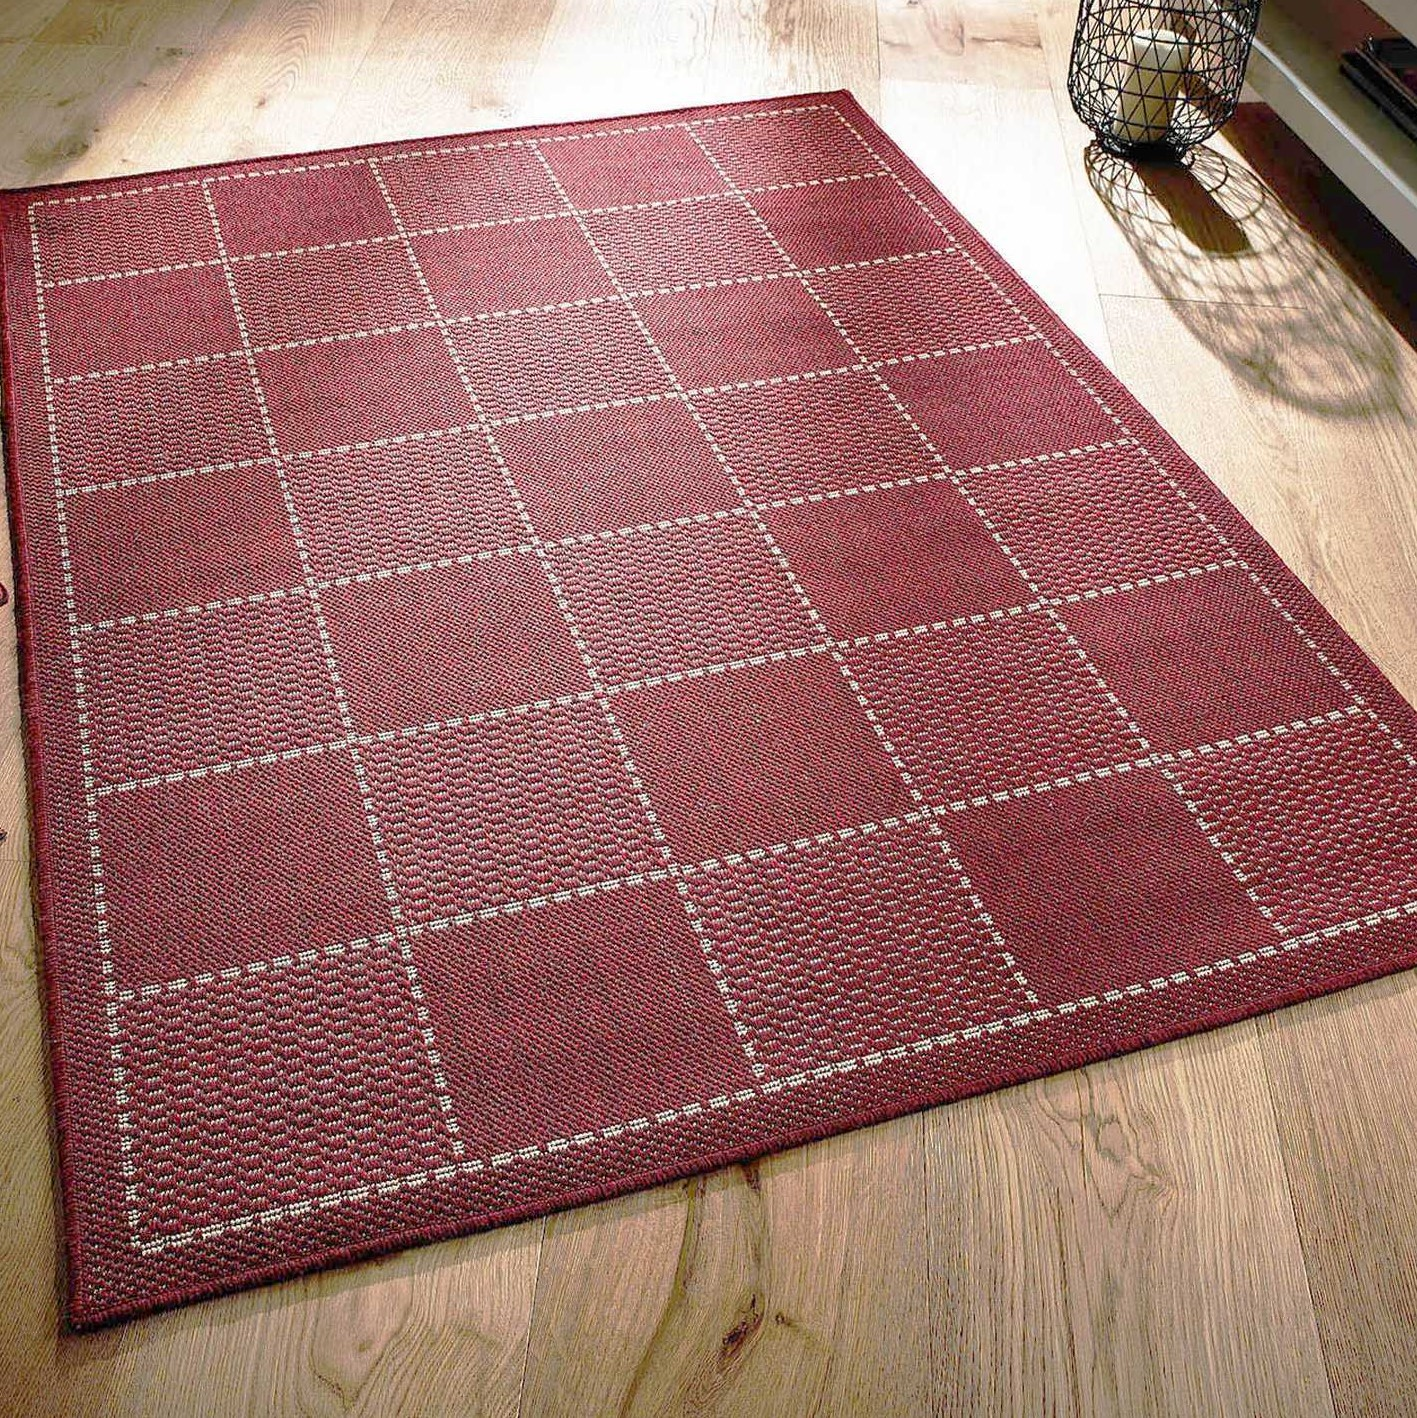 Super Sisalo Anti Slip Kitchen Rugs In Red Free Uk